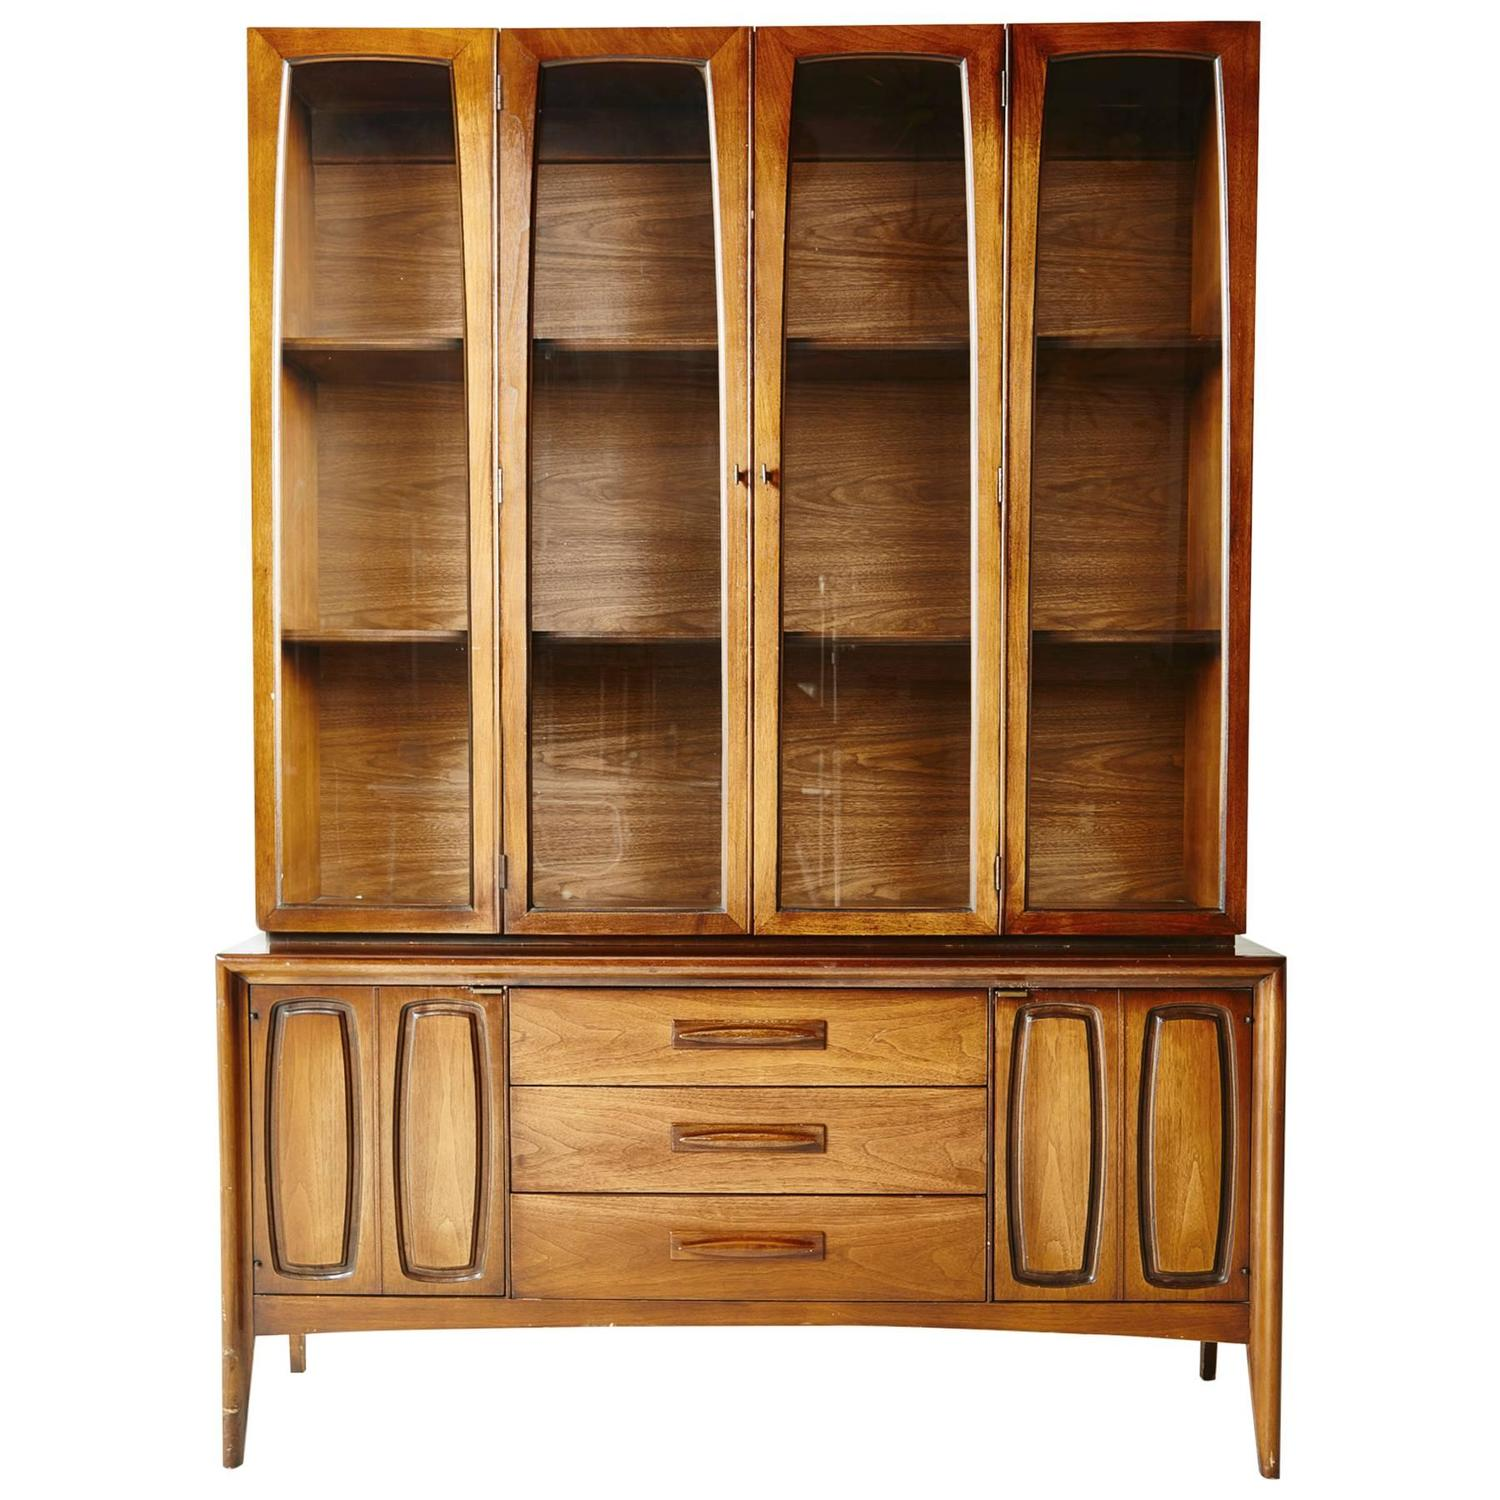 on sale american modern china display cabinet at 1stdibs. Black Bedroom Furniture Sets. Home Design Ideas